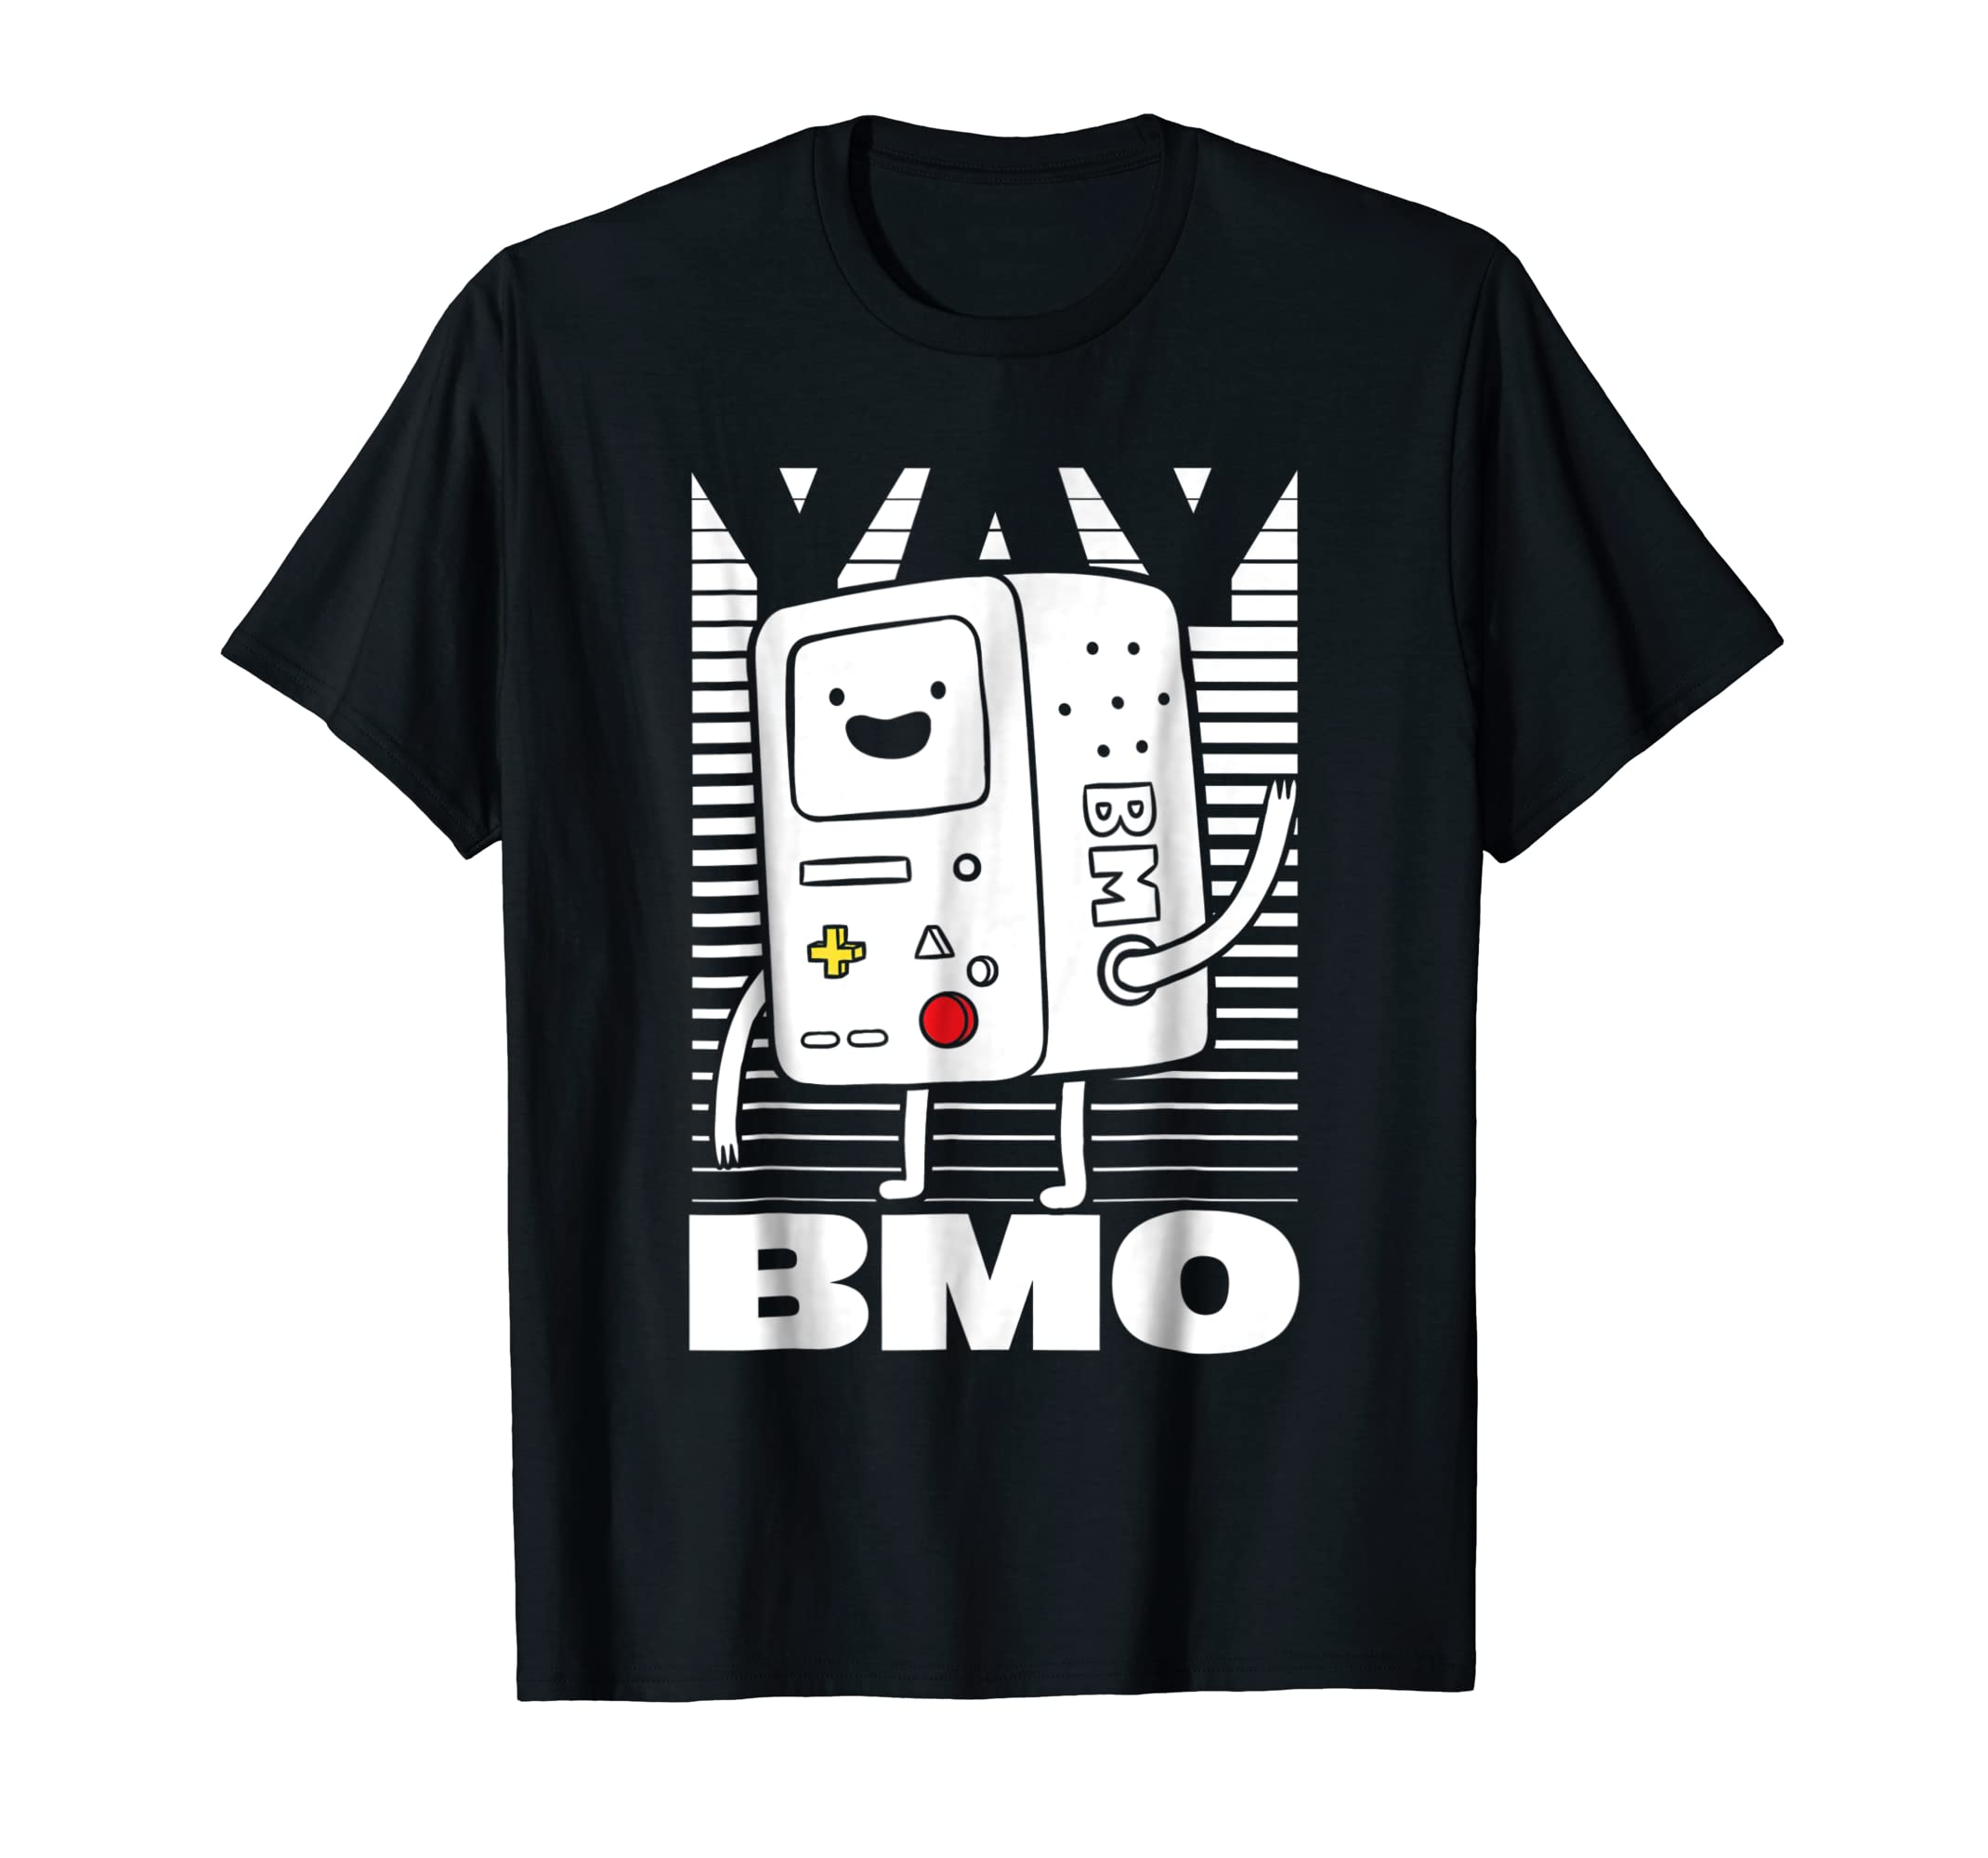 515cc8a8 Adventure Time BMO Wave YAY Halftone Fade Graphic T Shirt-azvn ...